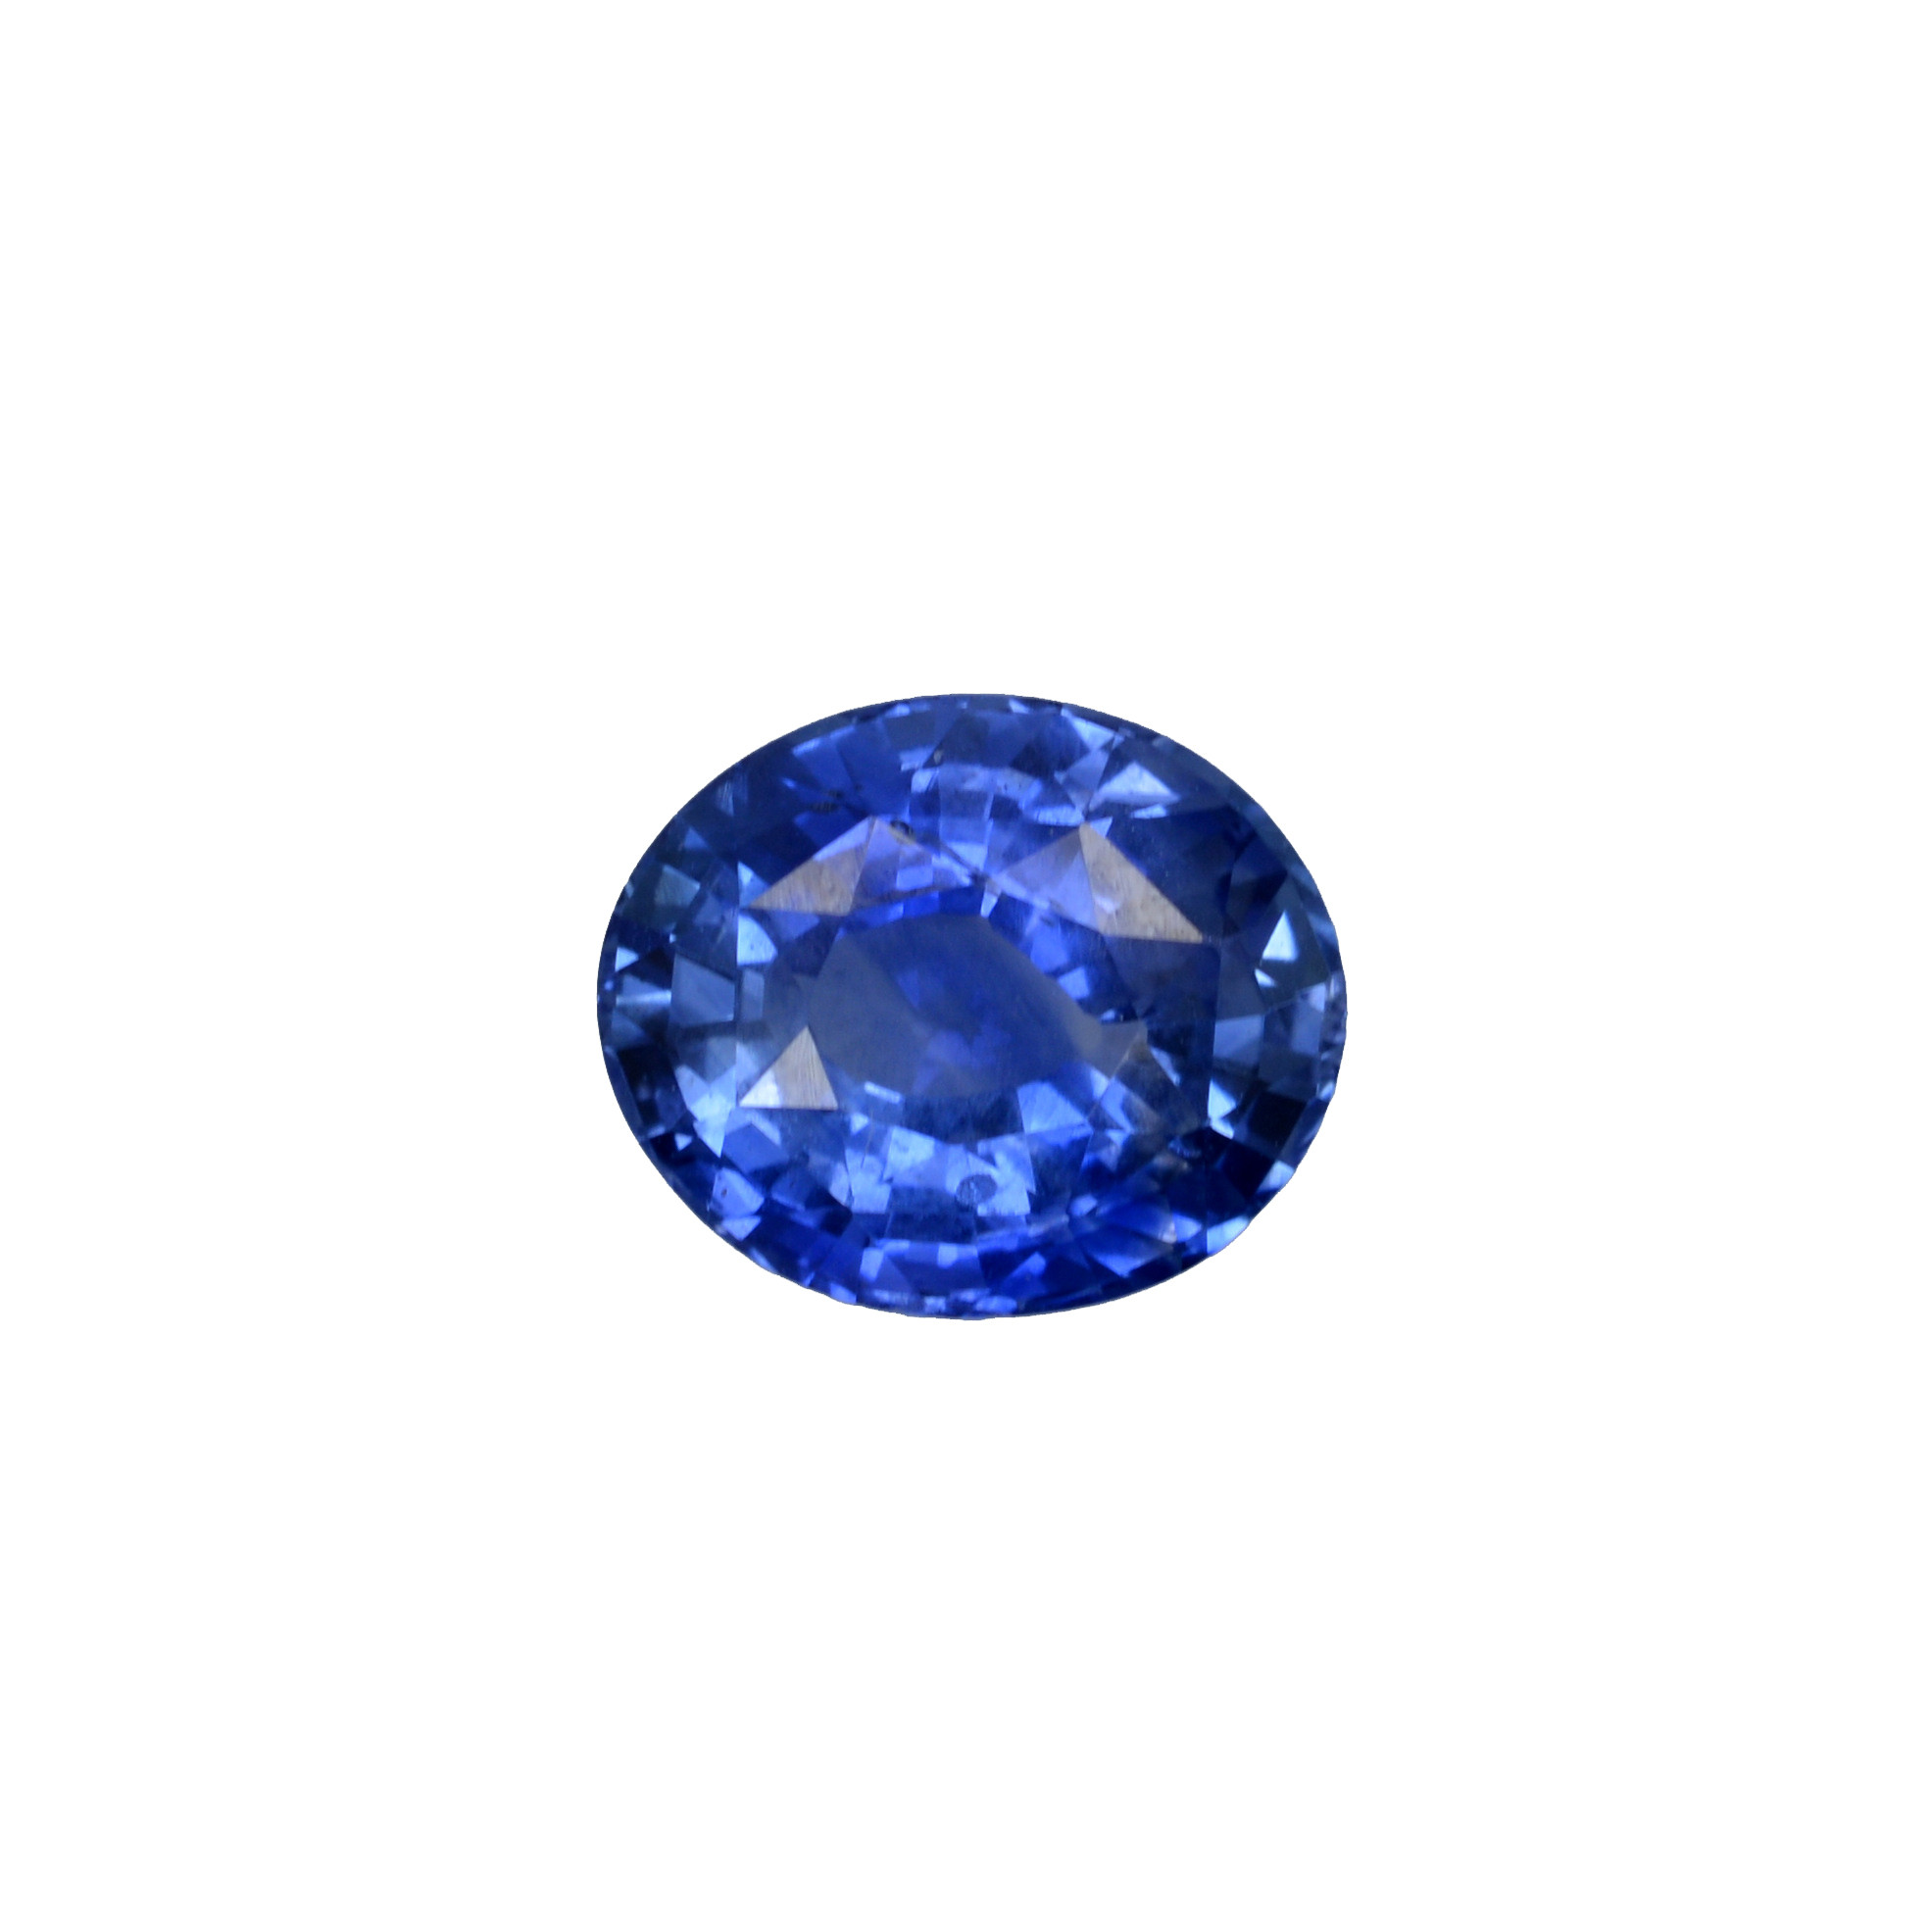 queen sapphire gem london emerald gems guide of to the gemstone diamond blogs